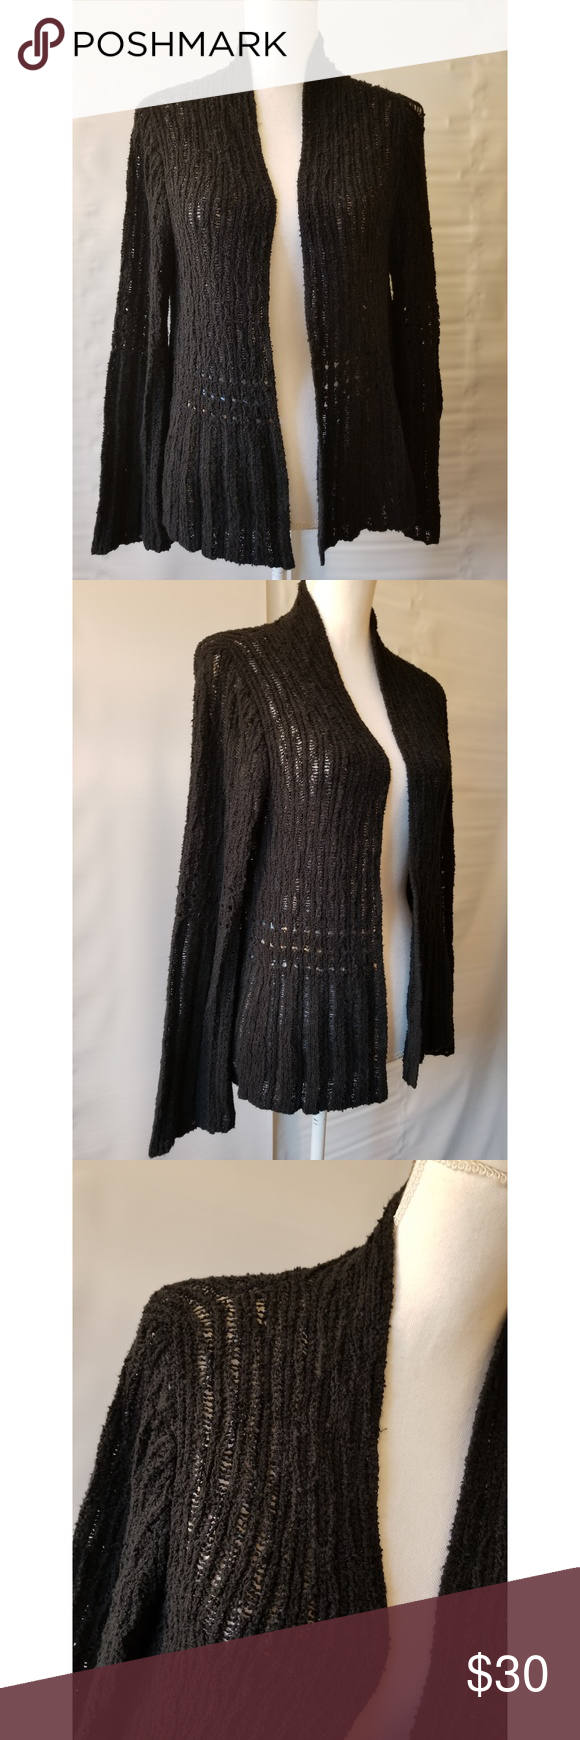 d75acab71e Peruvian Connection knit open front duster medium This soft sweater is a  size medium 100%